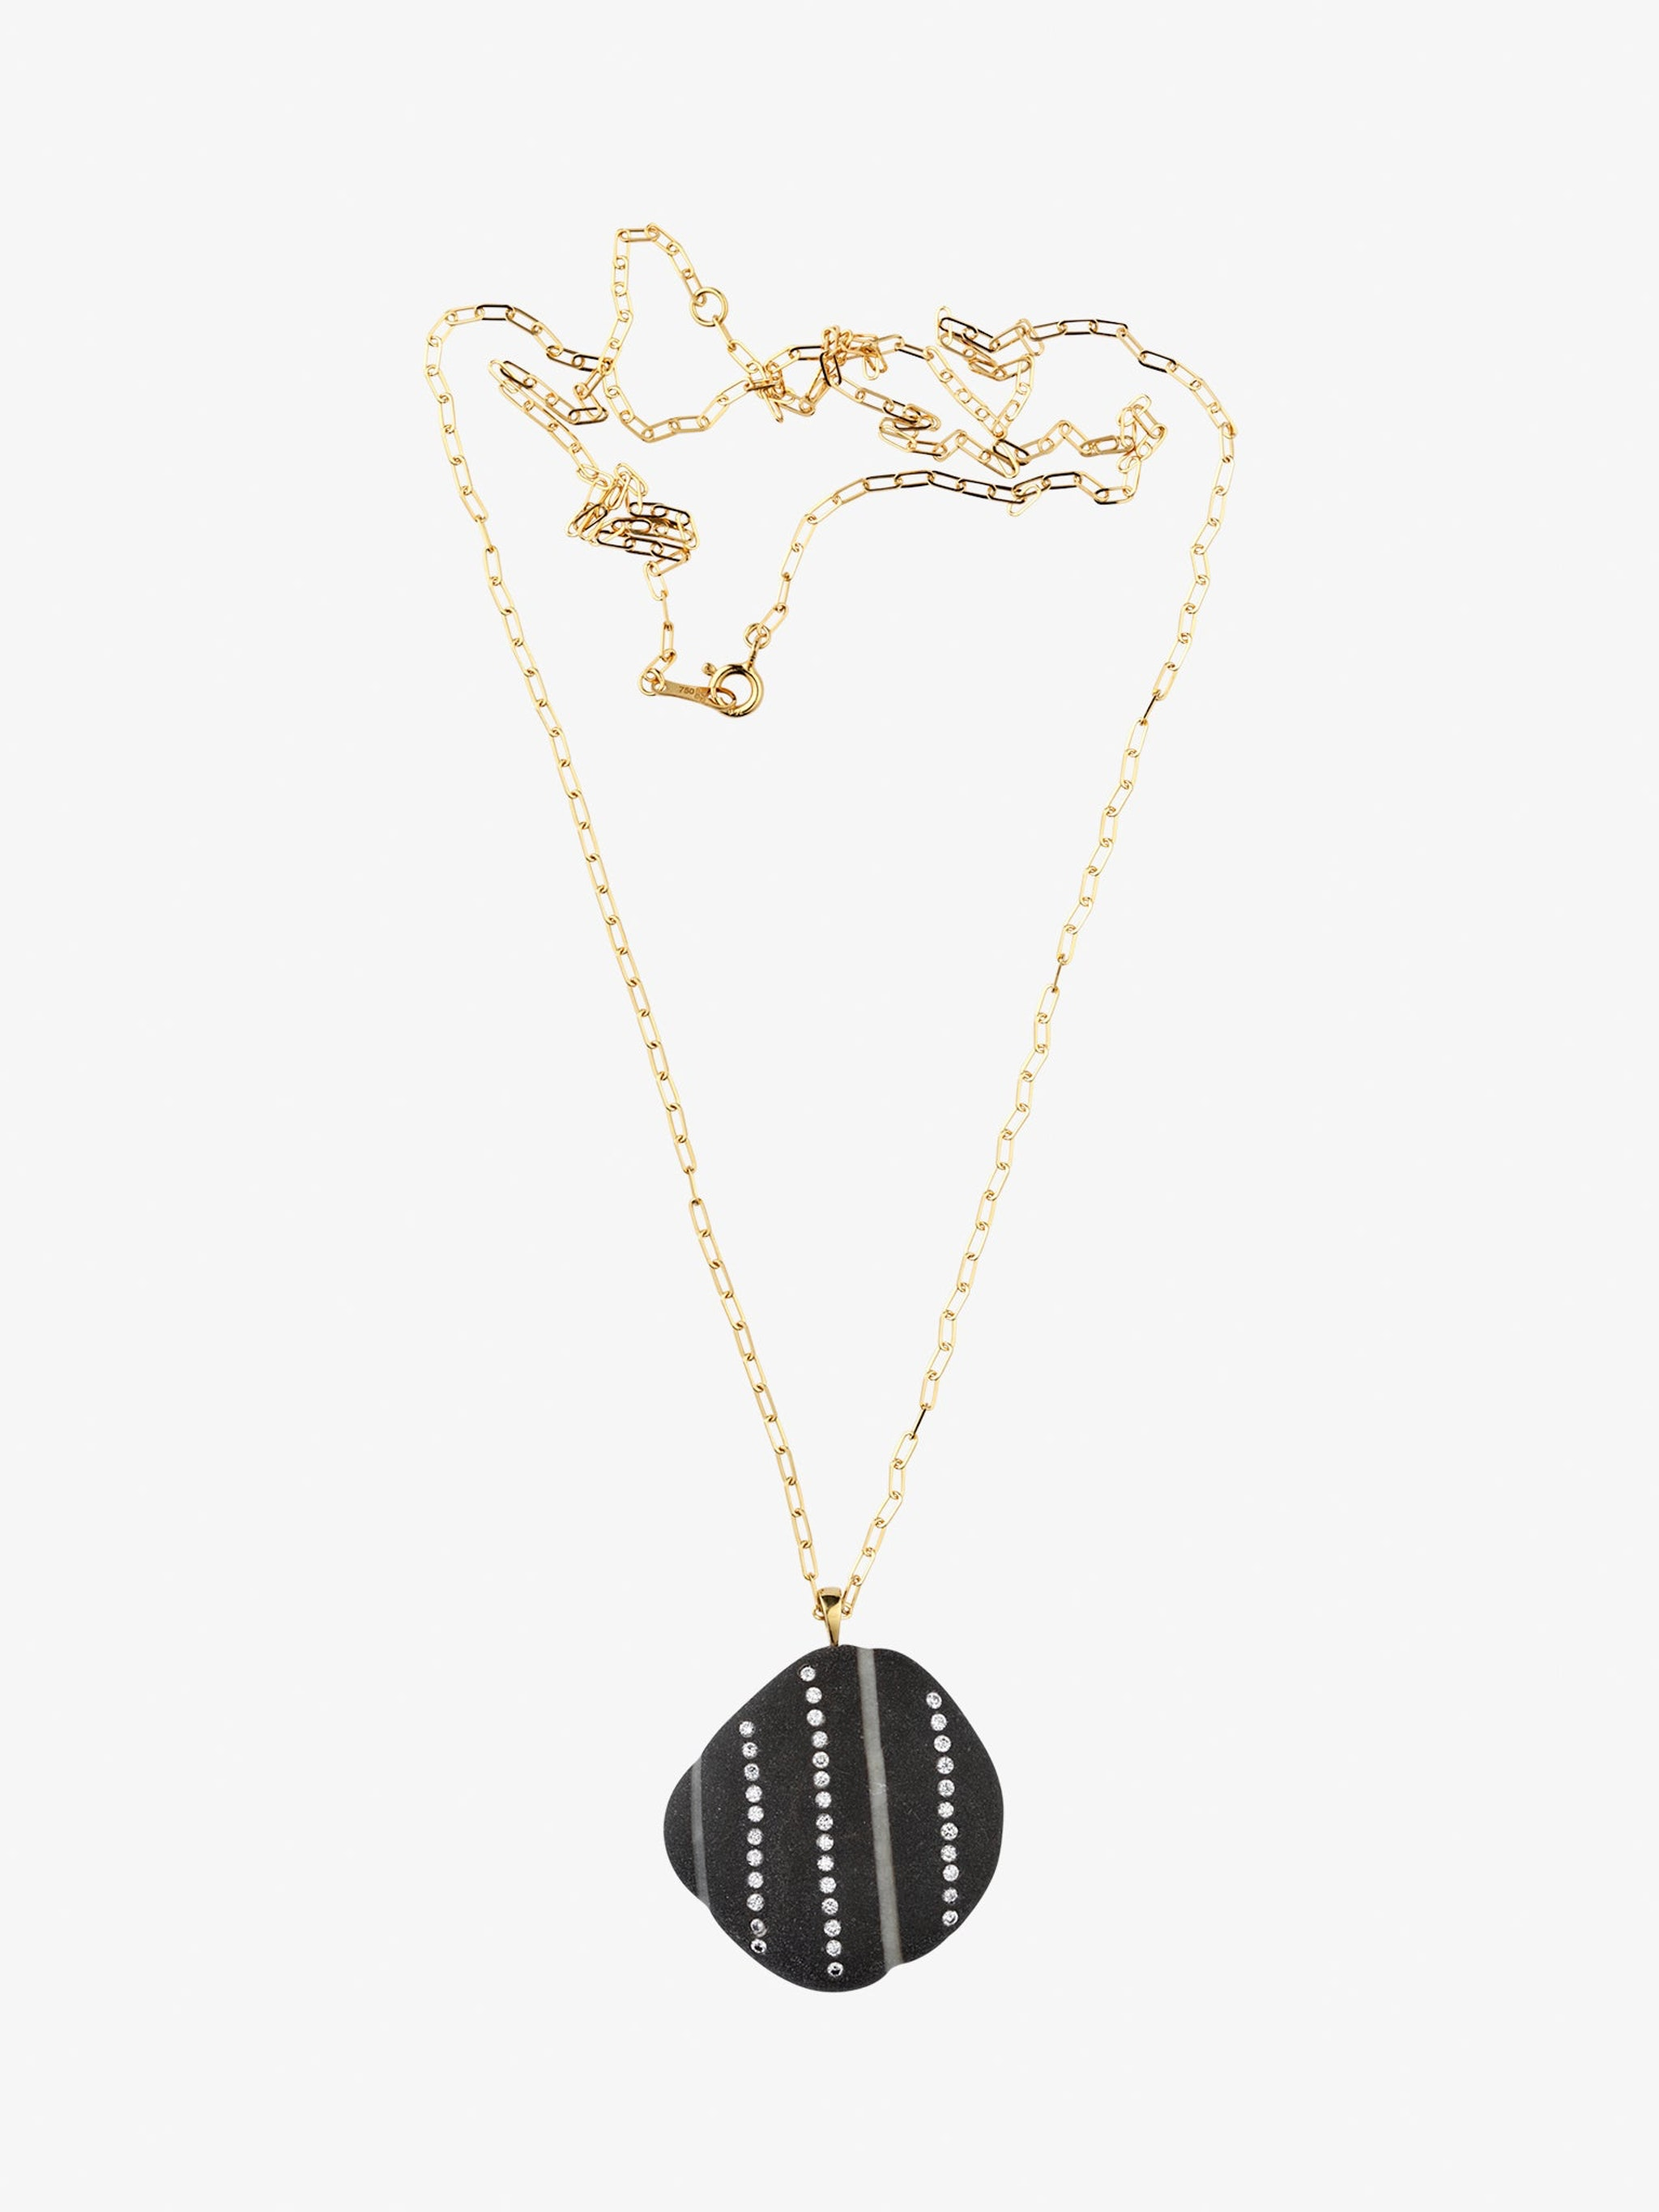 Reach gold, stone and diamond necklace photo 1